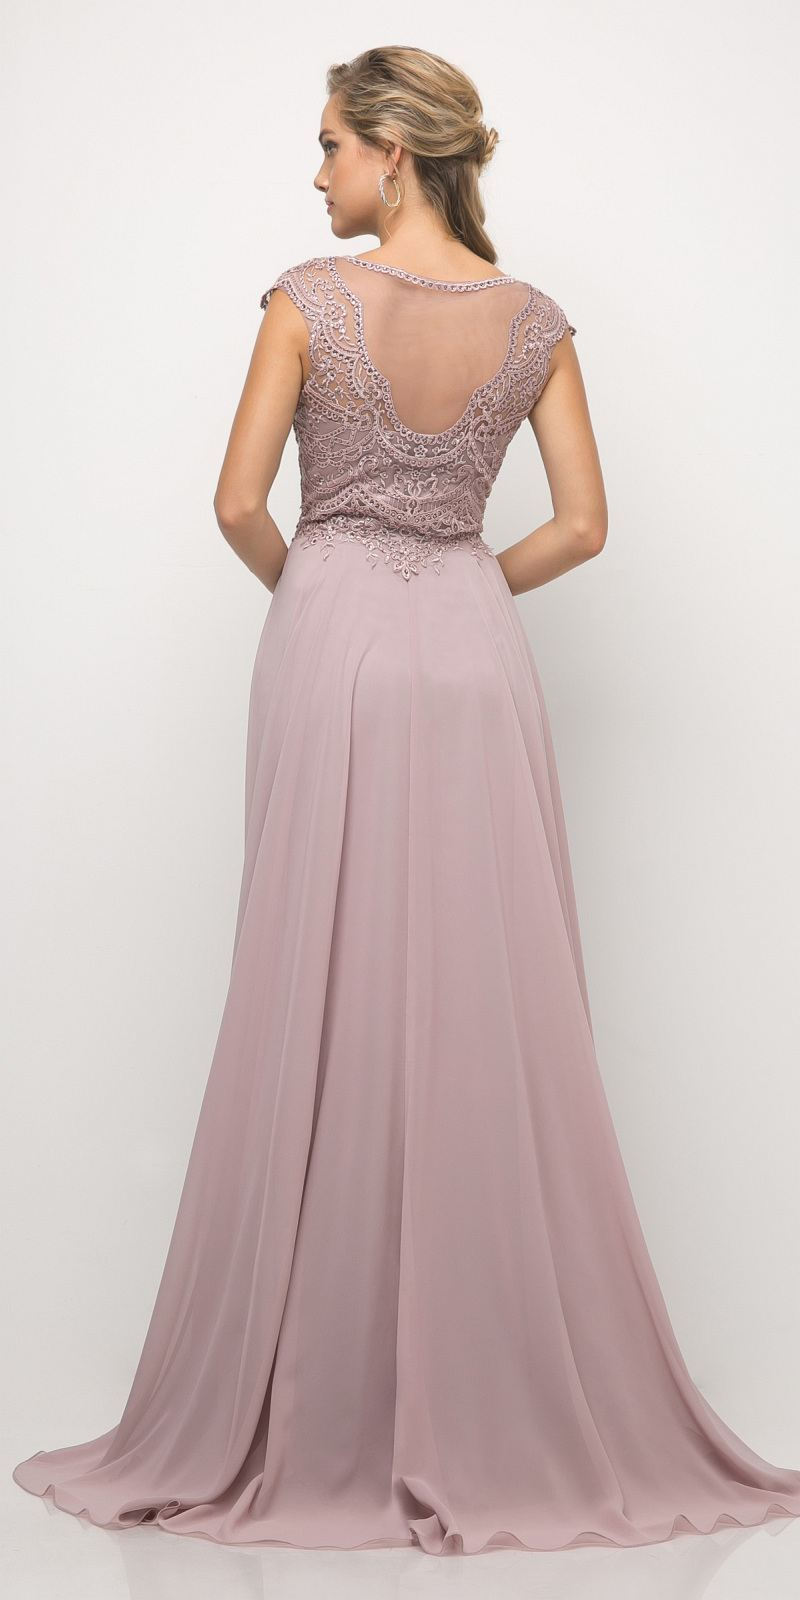 c1671181e1 ... Cinderella Divine UL035 Beaded Lace Bodice Chiffon Dress Mauve Long Cap  Sleeve Slit ...